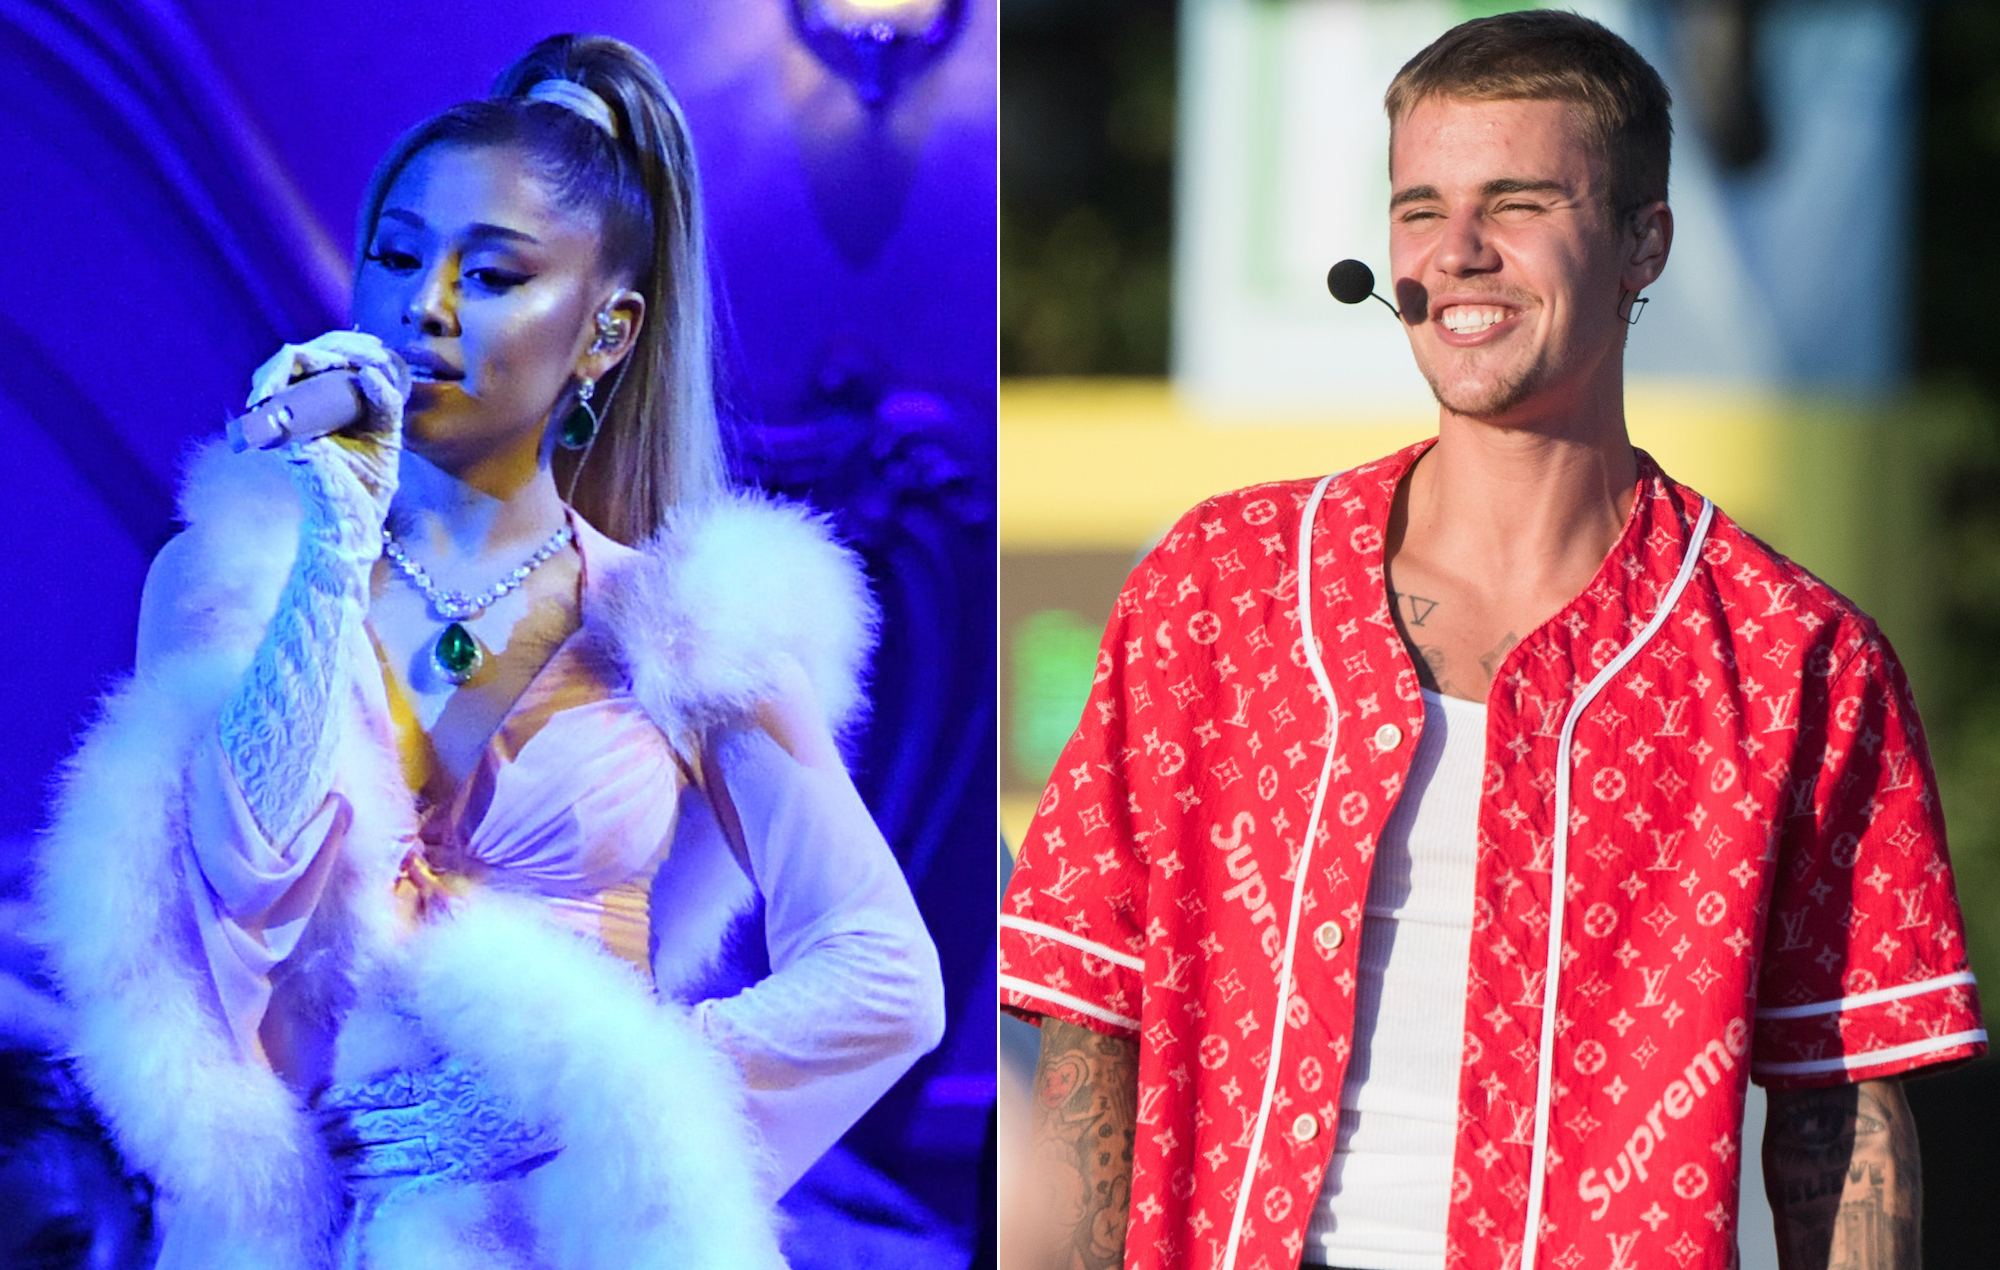 Justin Bieber And Ariana Grande Release Charity Single Stuck With U